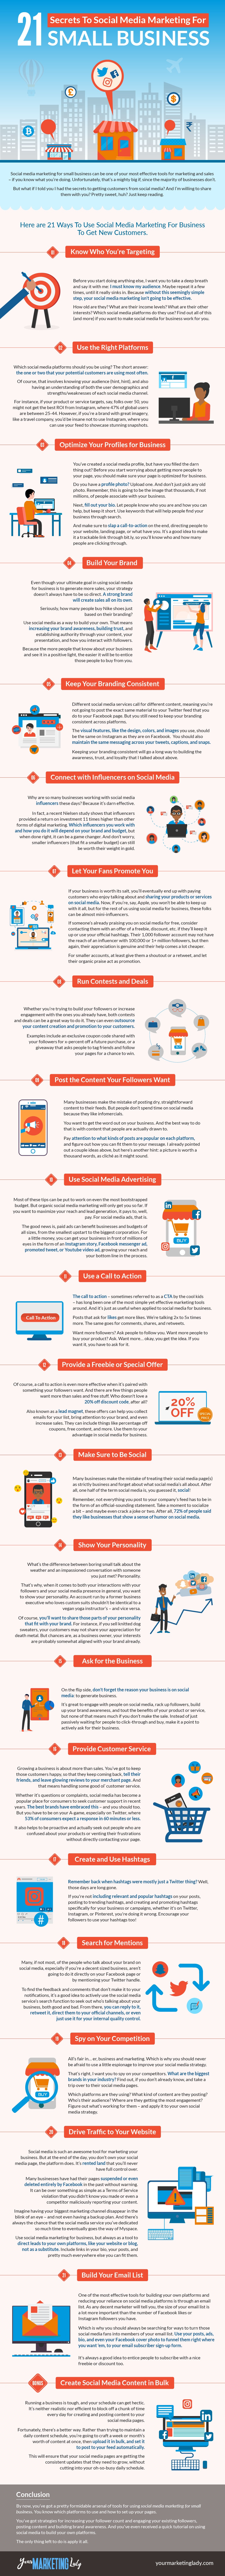 Infographic outlines essential social media marketing best practices